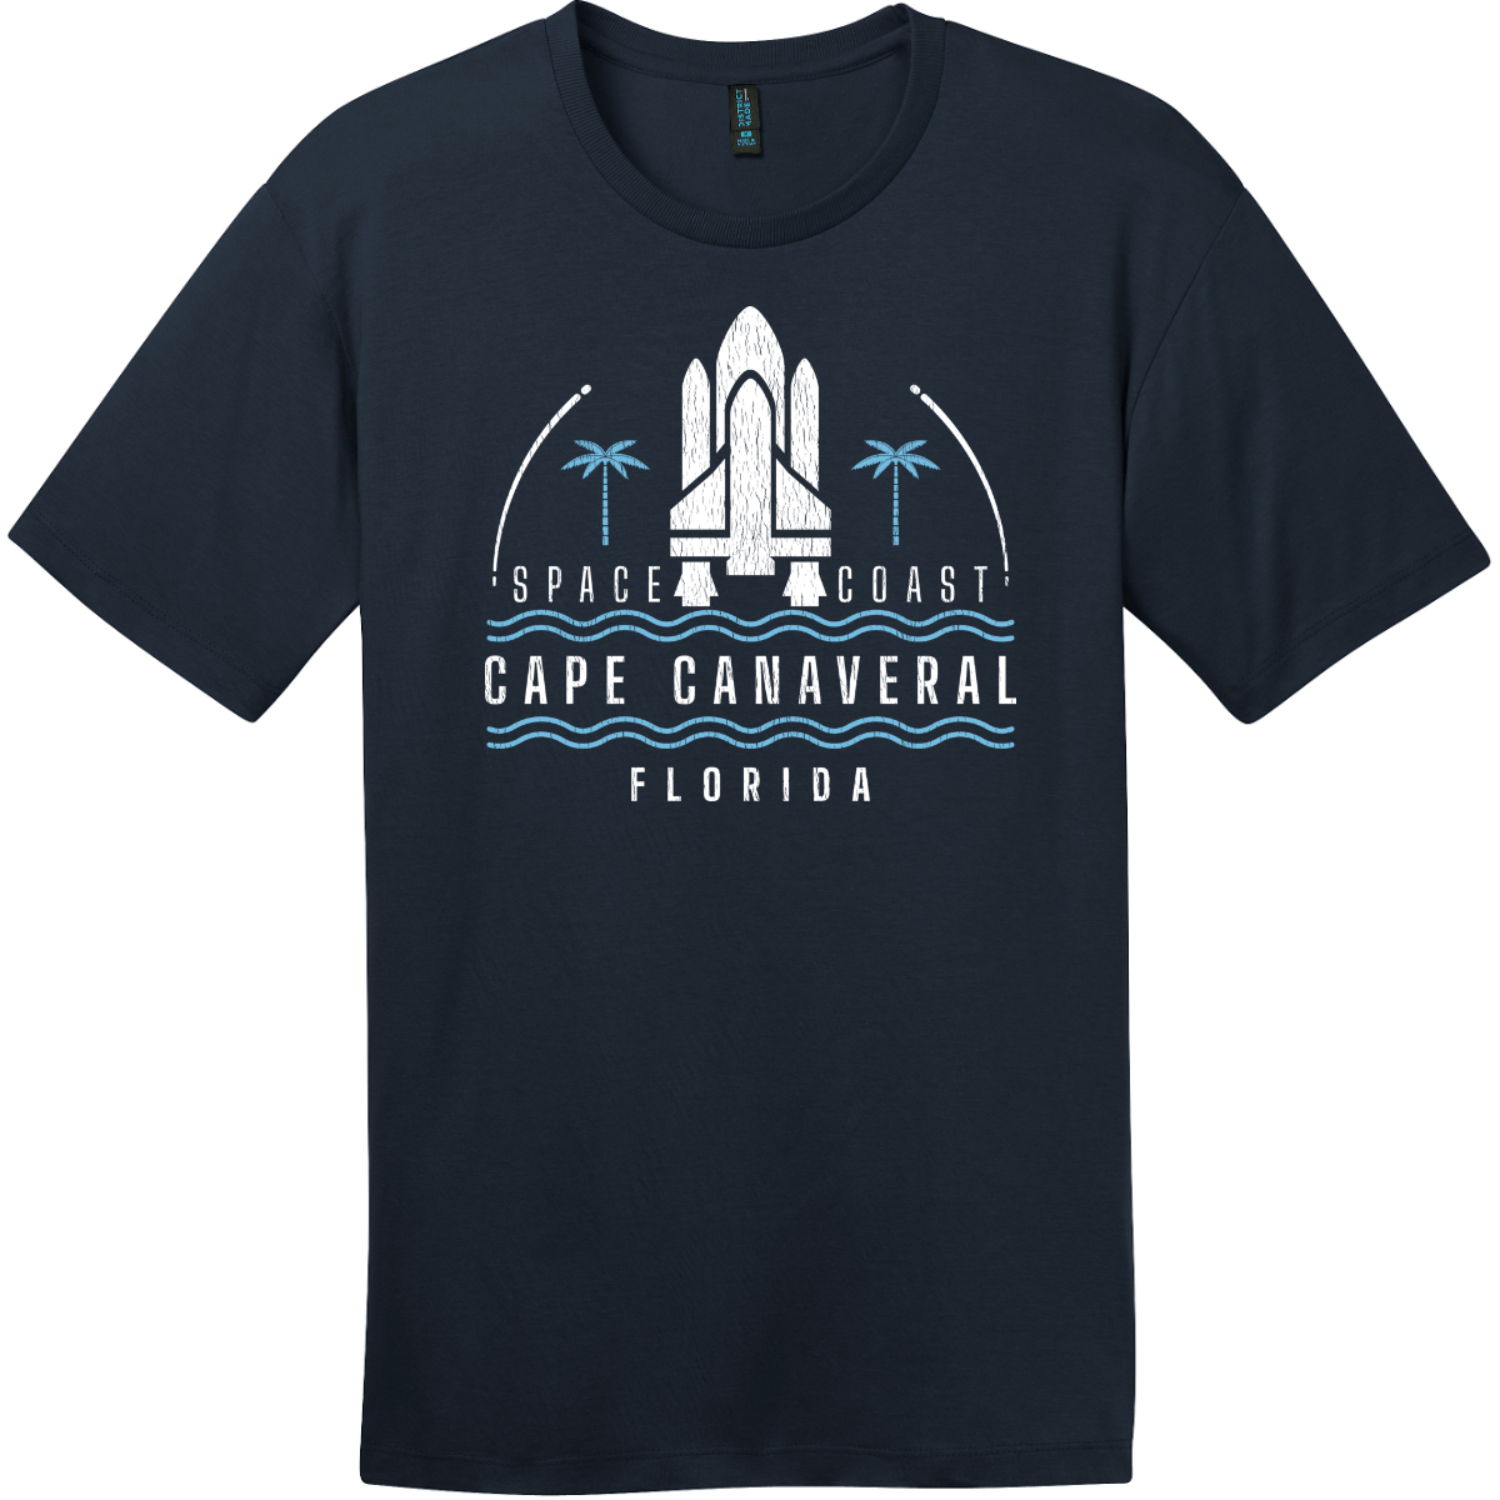 Cape Canaveral Space Coast Vintage T-Shirt New Navy District Perfect Weight Tee DT104